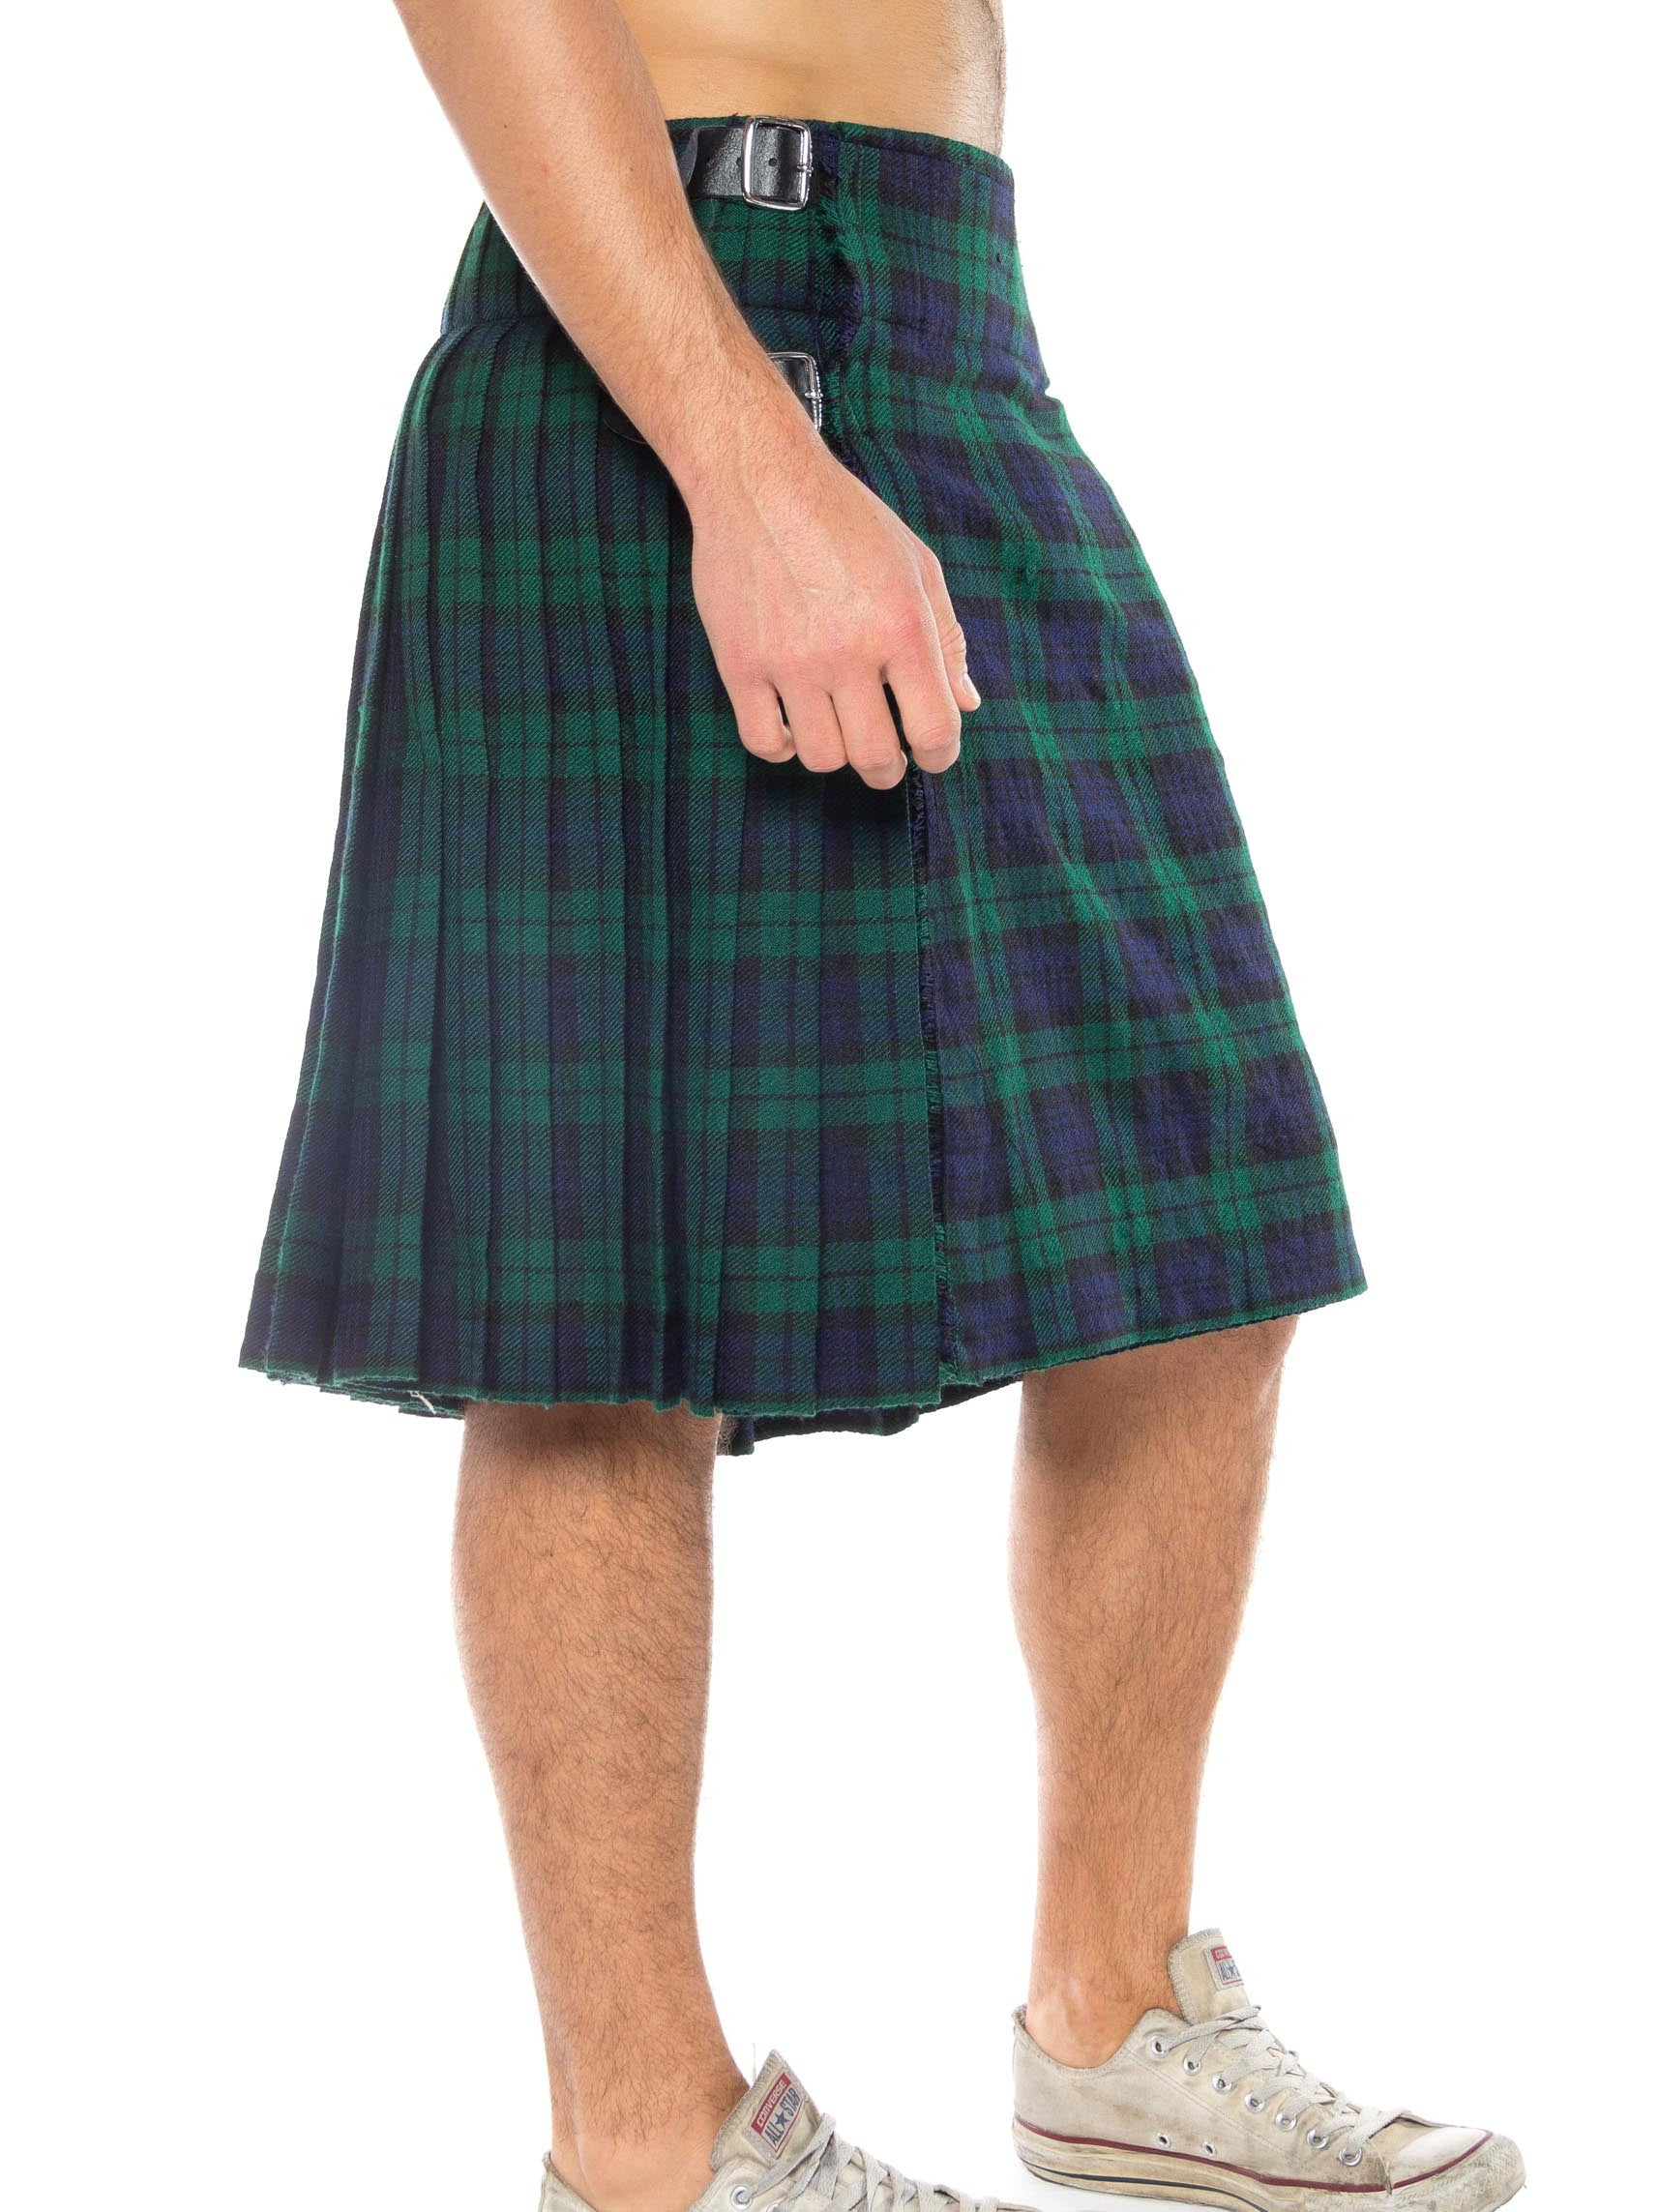 1980S Blue & Green Wool Men's Blackwatch Plaid Tartan Skirt / Kilt